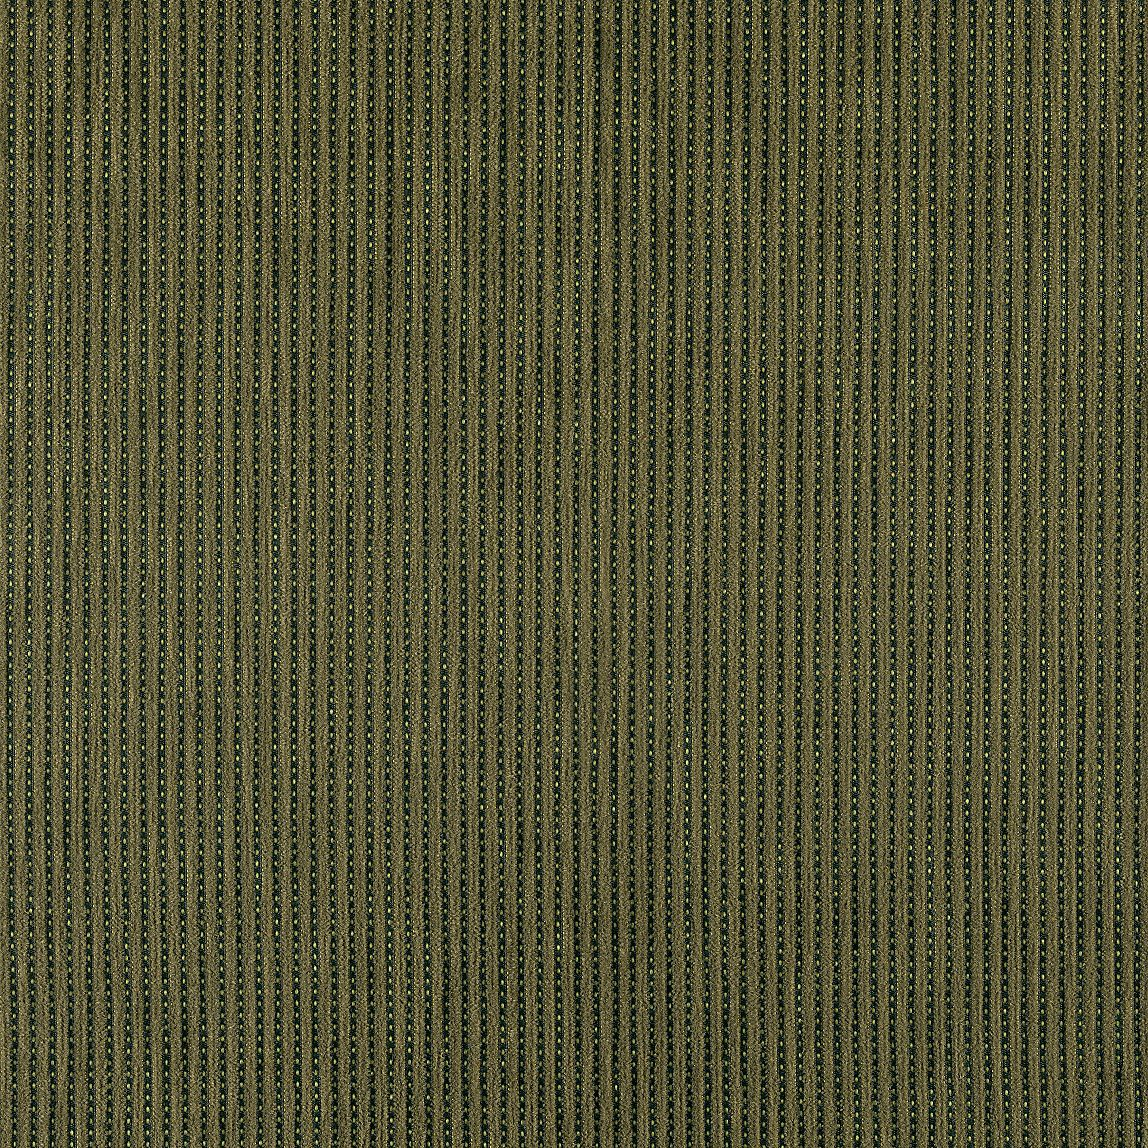 Chenille Cord Moss Swatch